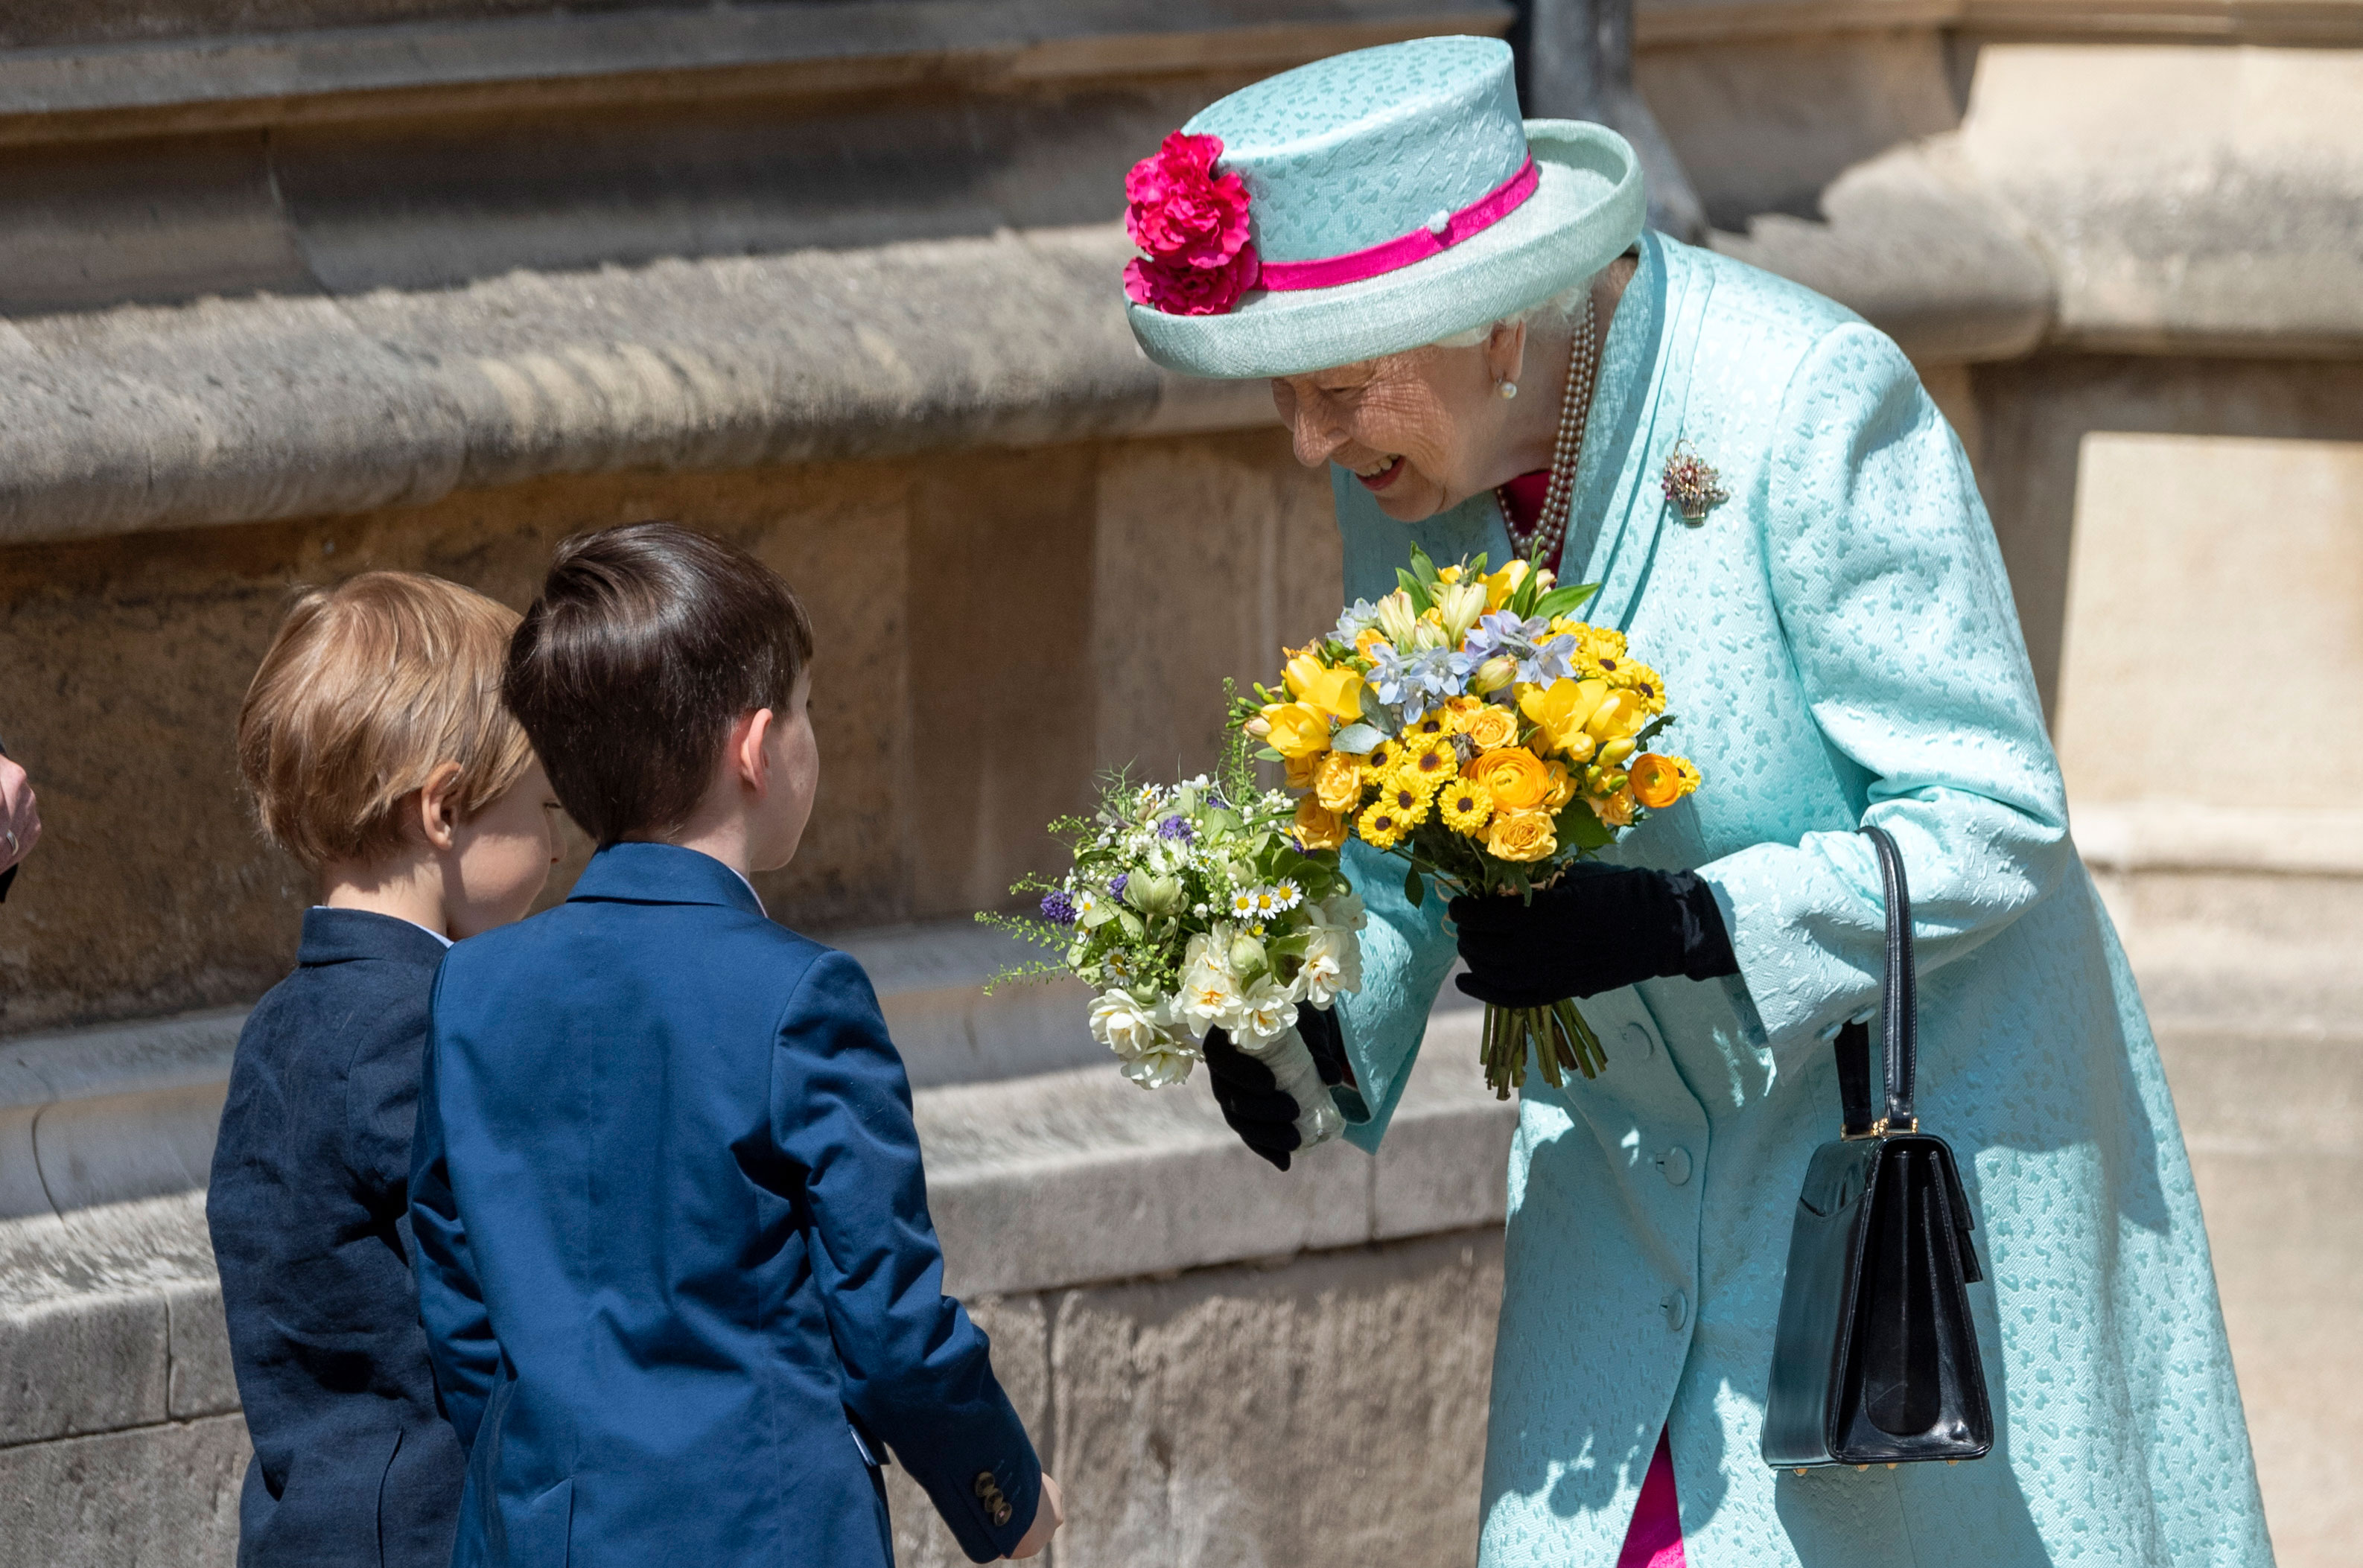 Queen Elizabeth II Royal Family Celebrate Easter - The queen bent down to interact with two children.